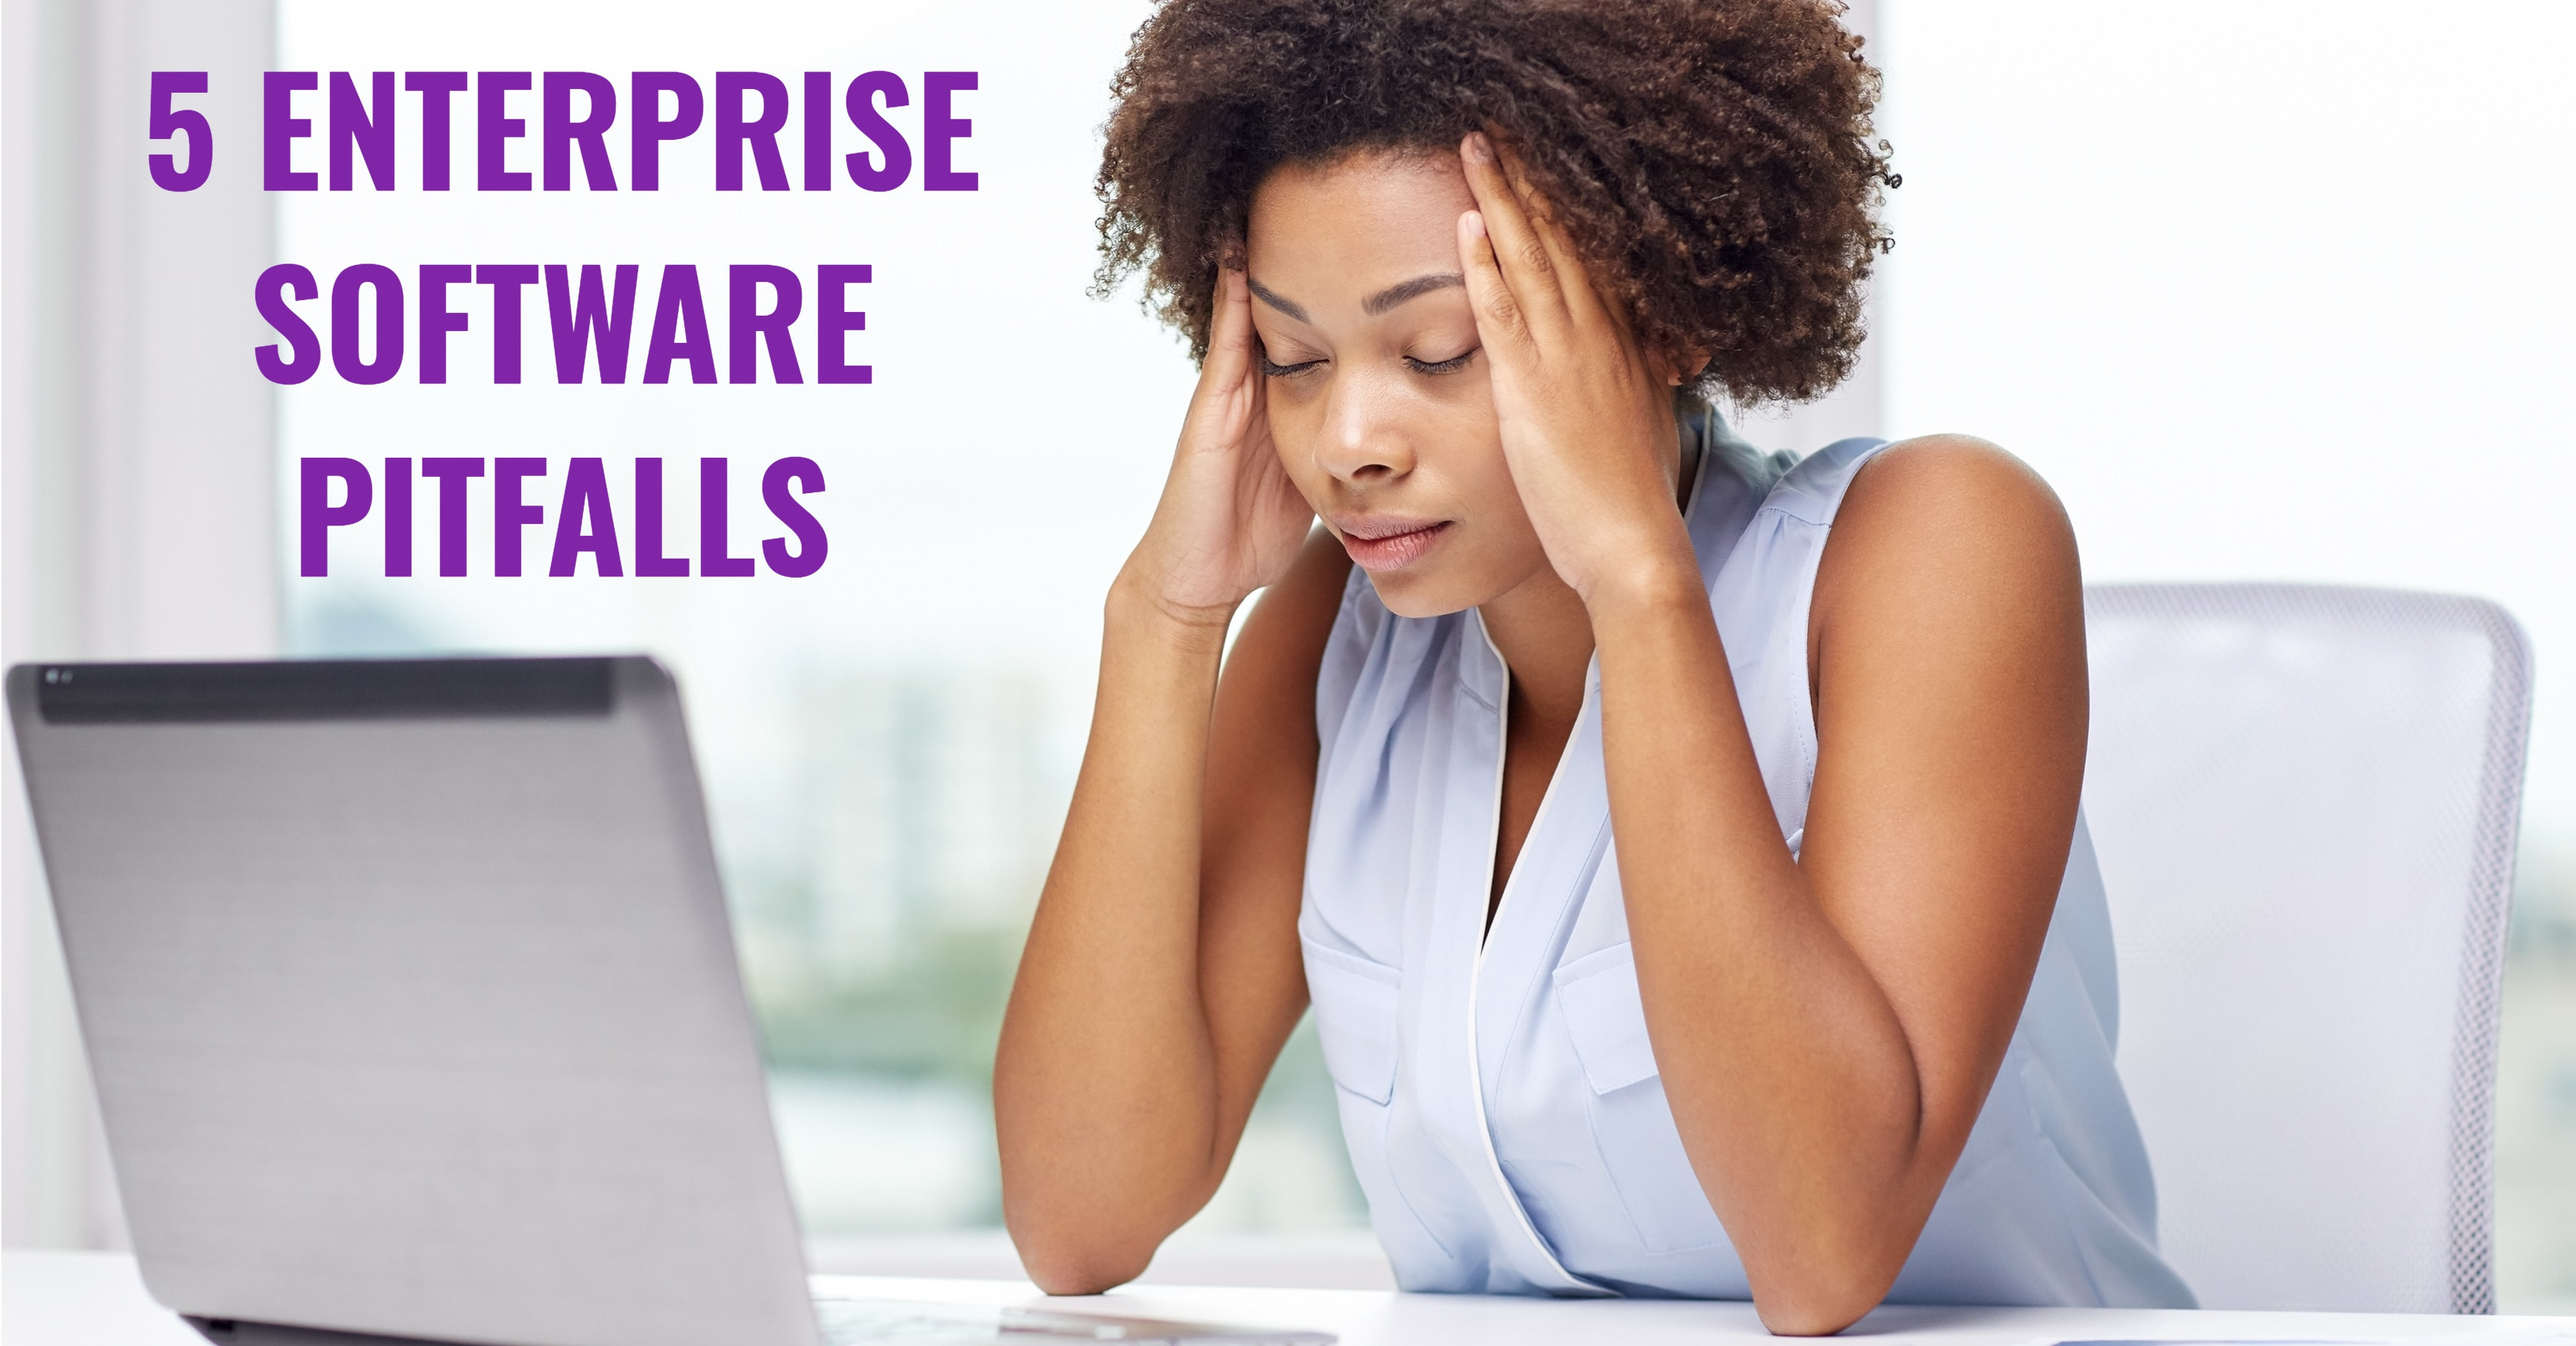 5 Enterprise Software Pitfalls—And How to Avoid Them